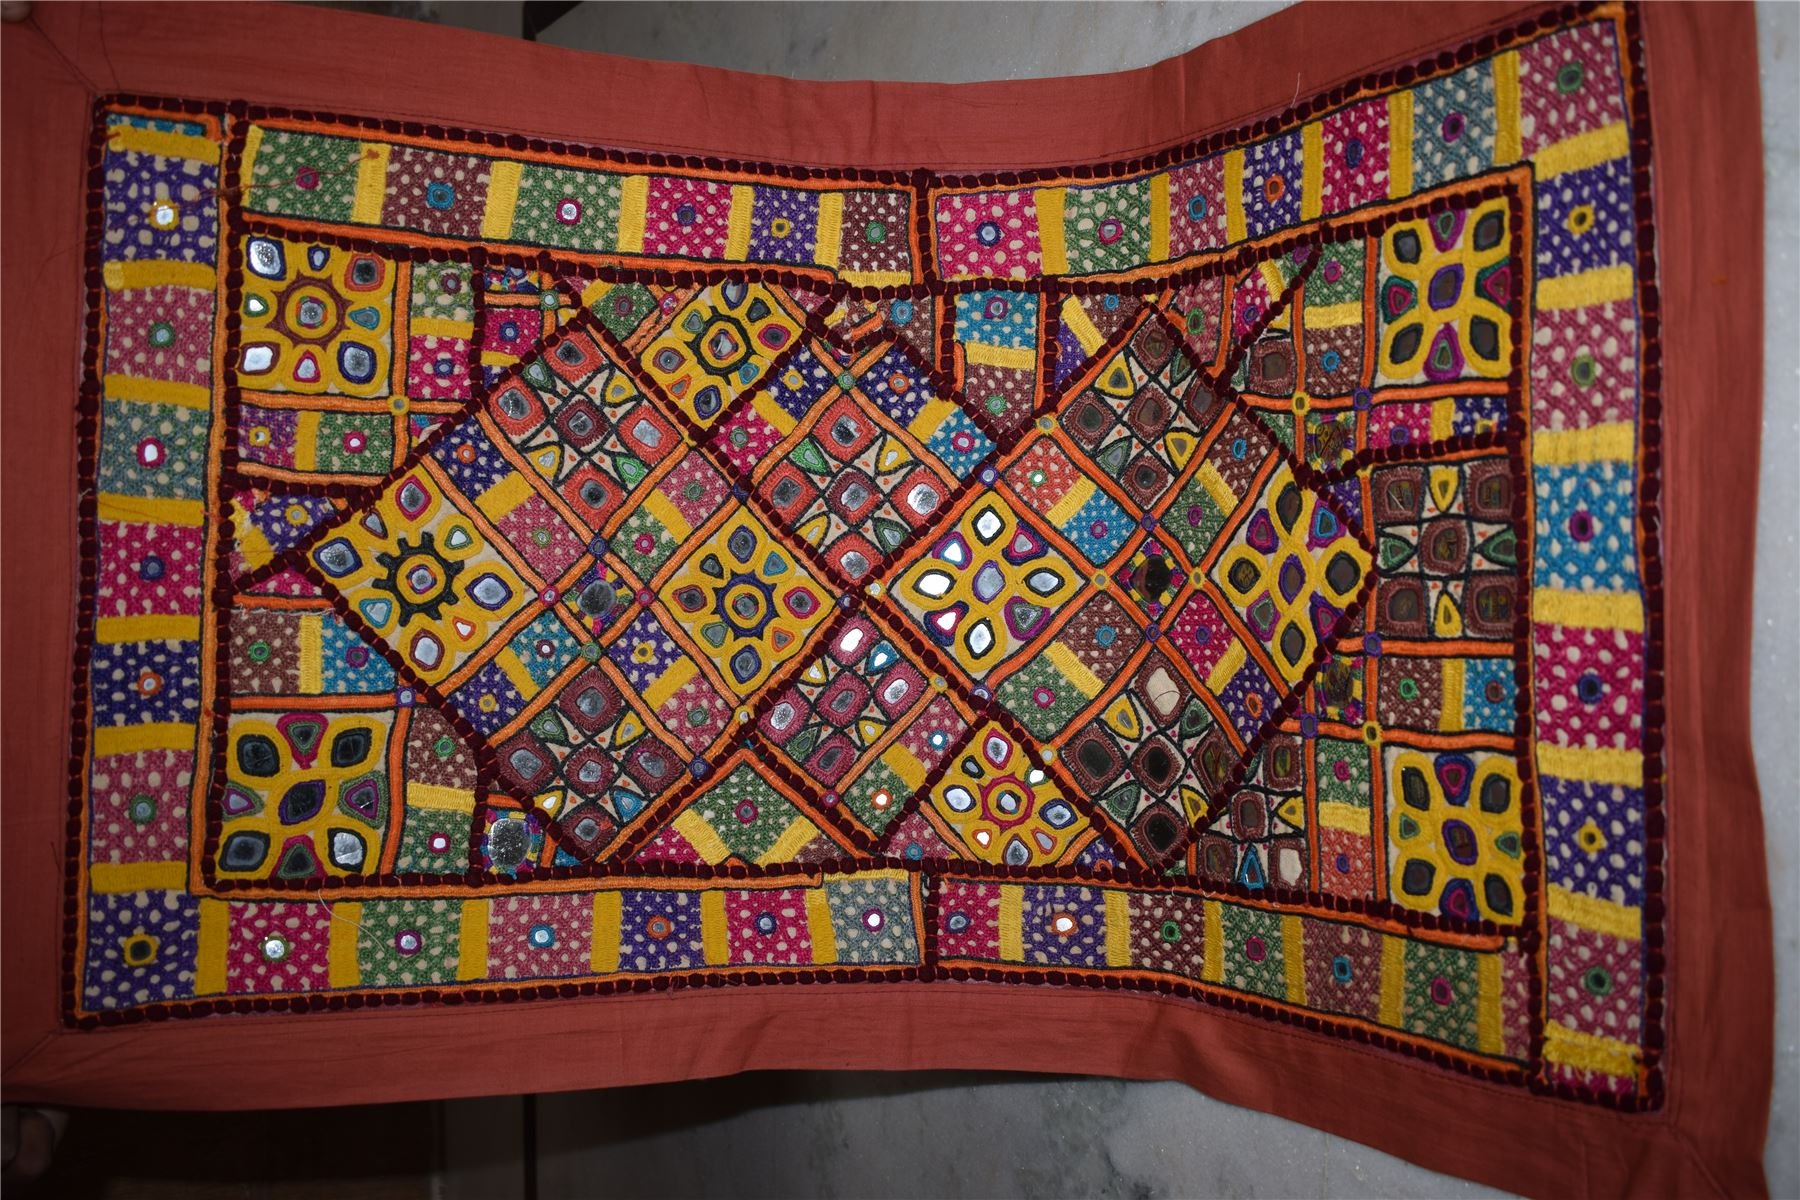 Wall Hanging Vintage Tapestry India Indian Patchwork Embroidered Ethnic 133